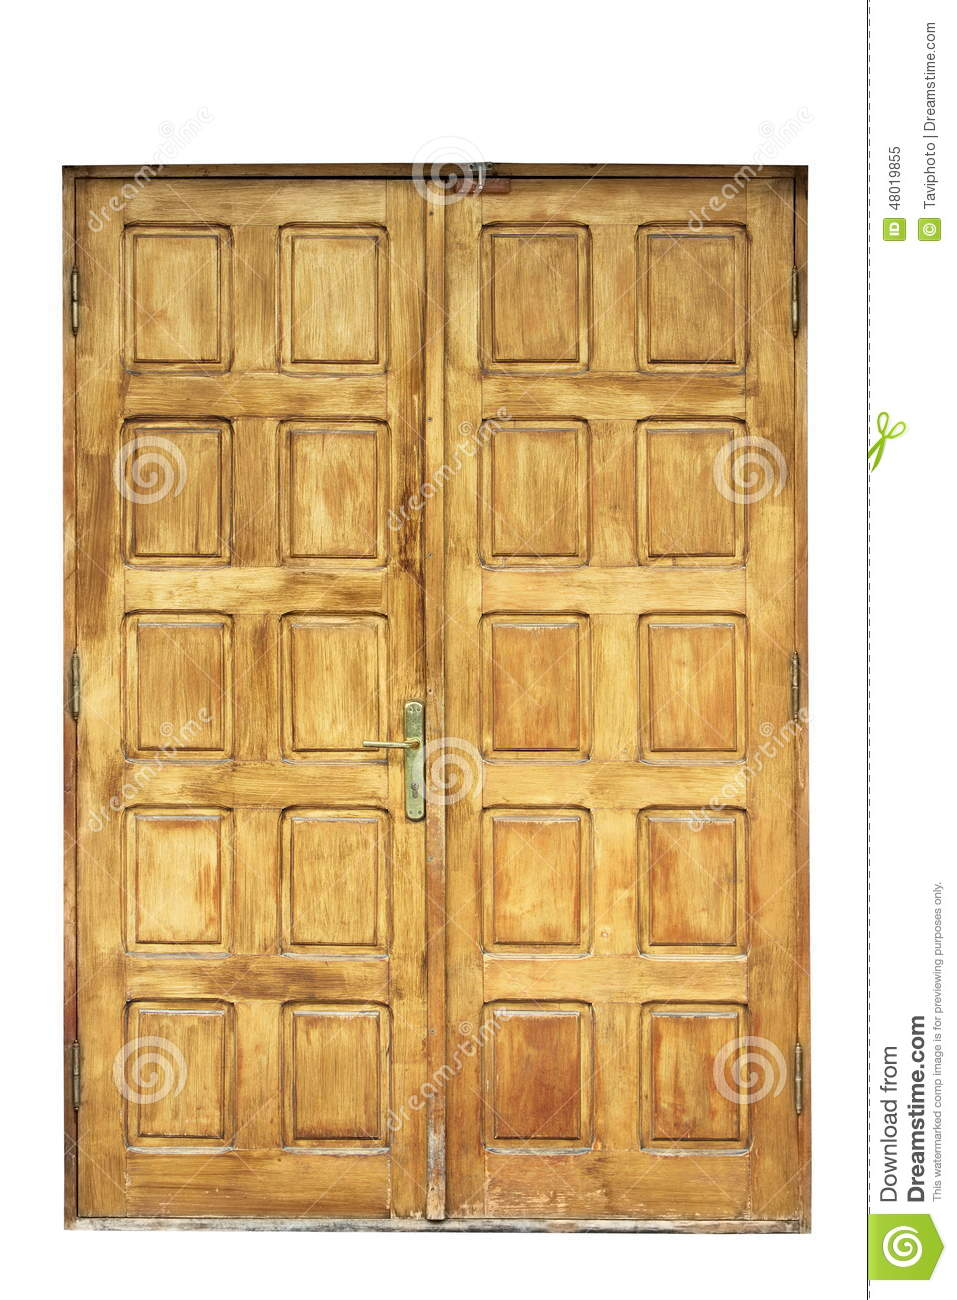 Old Wooden Door For Your Design Stock Image Image Of Lumber